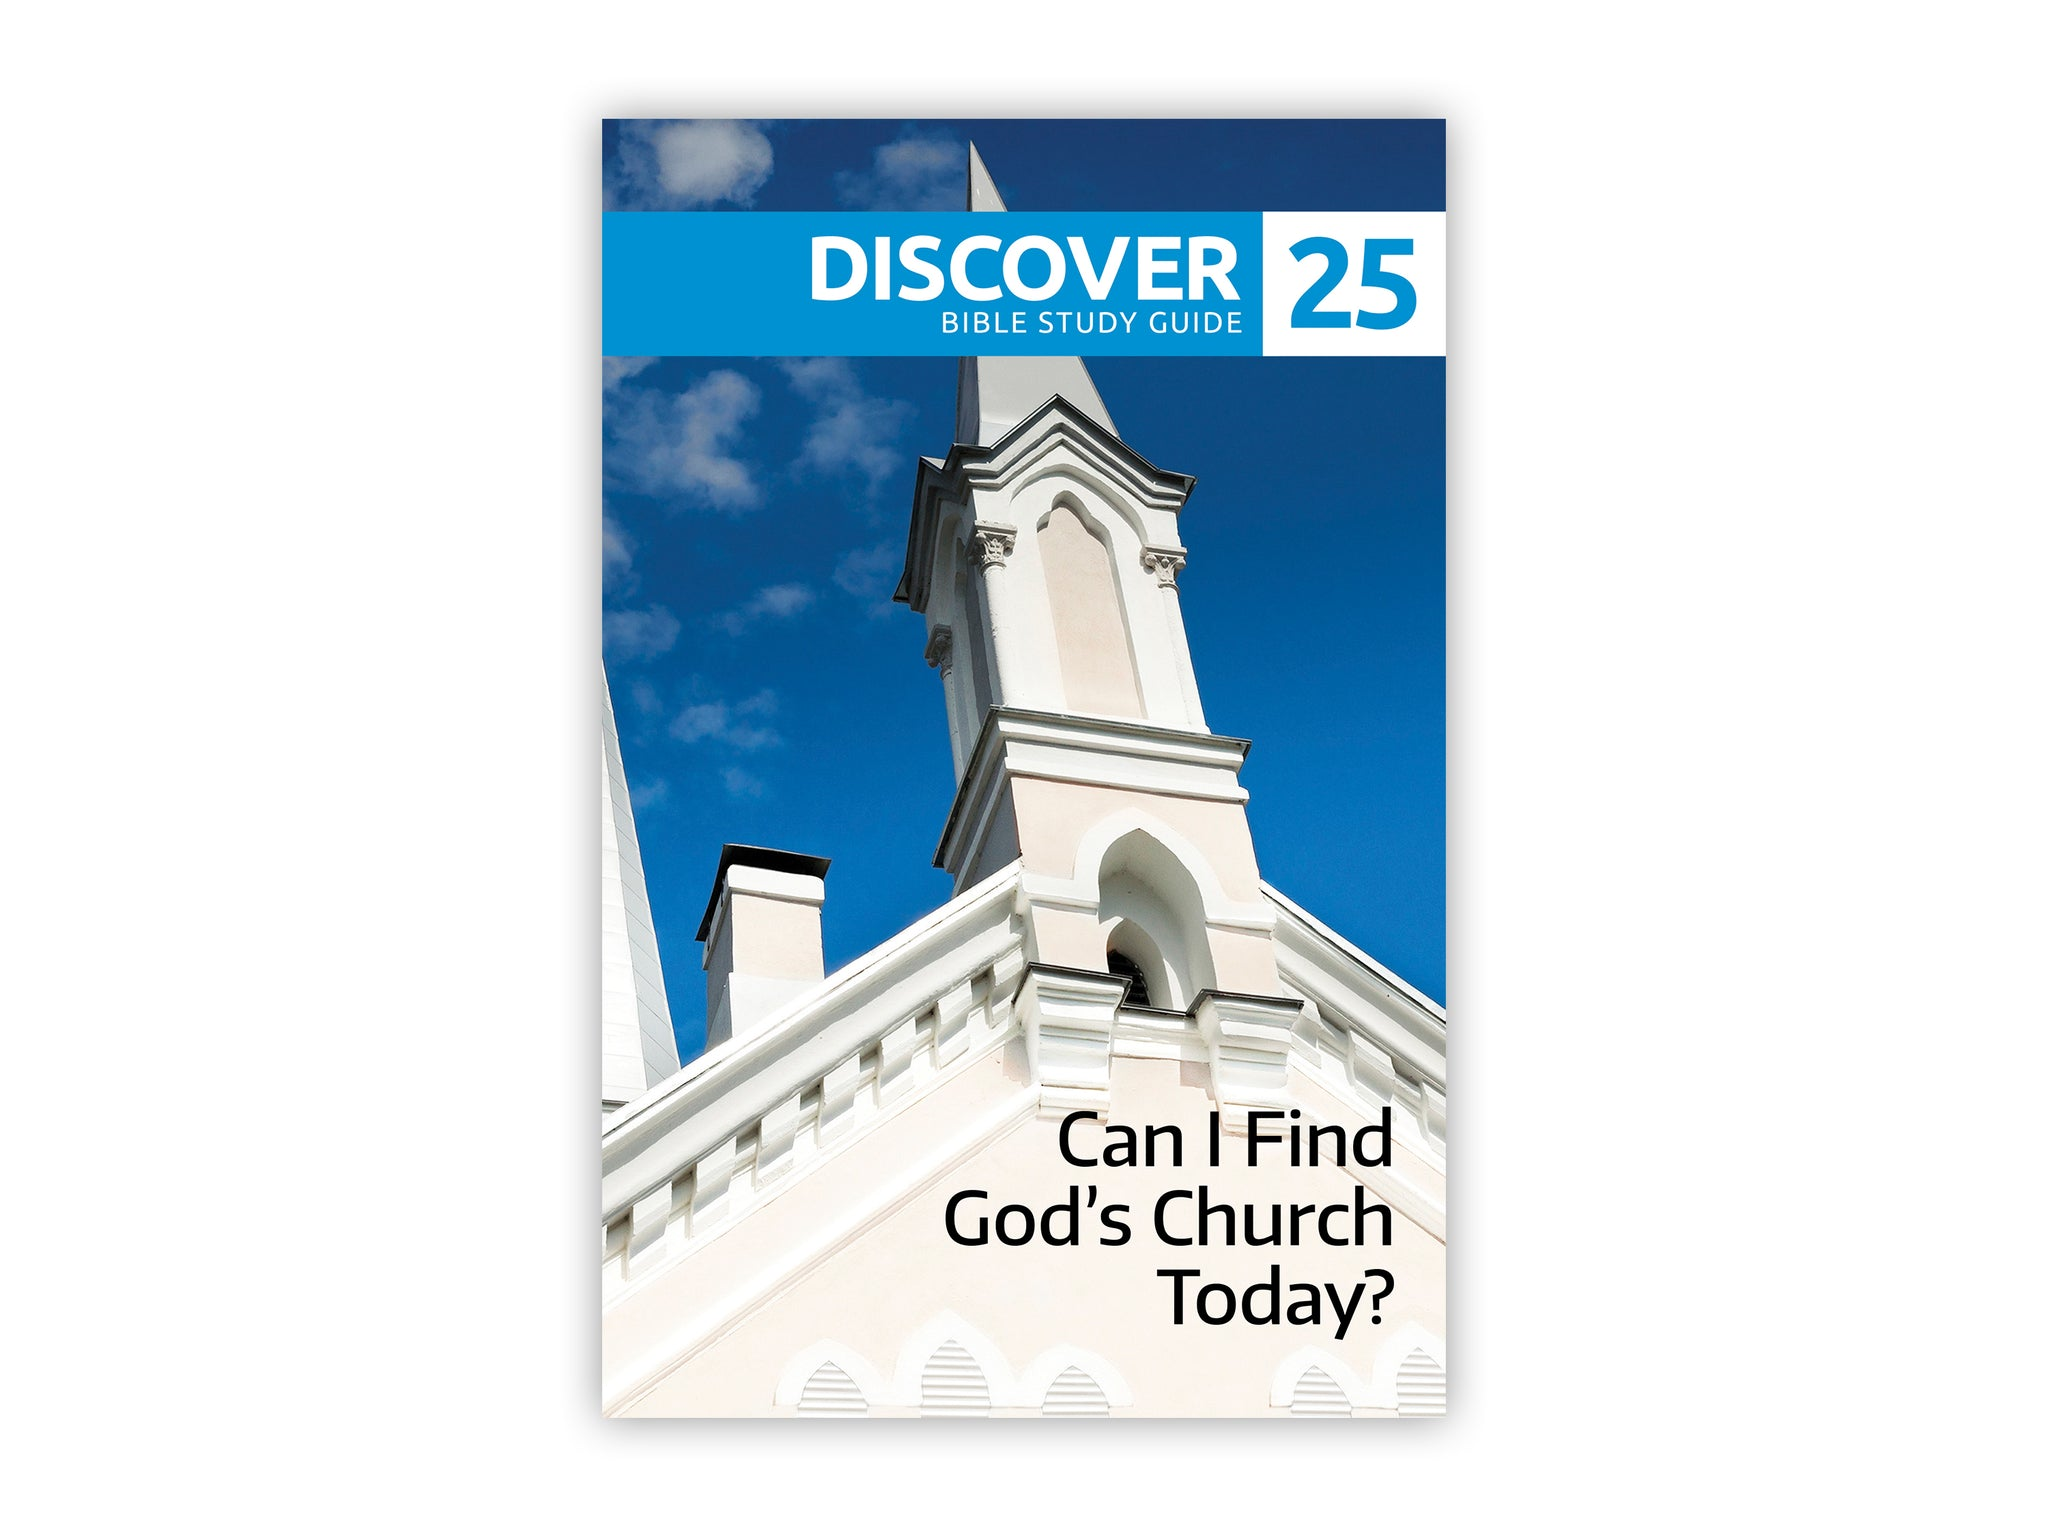 Discover Bible Study Guide #25 - Can I Find God's Church Today?